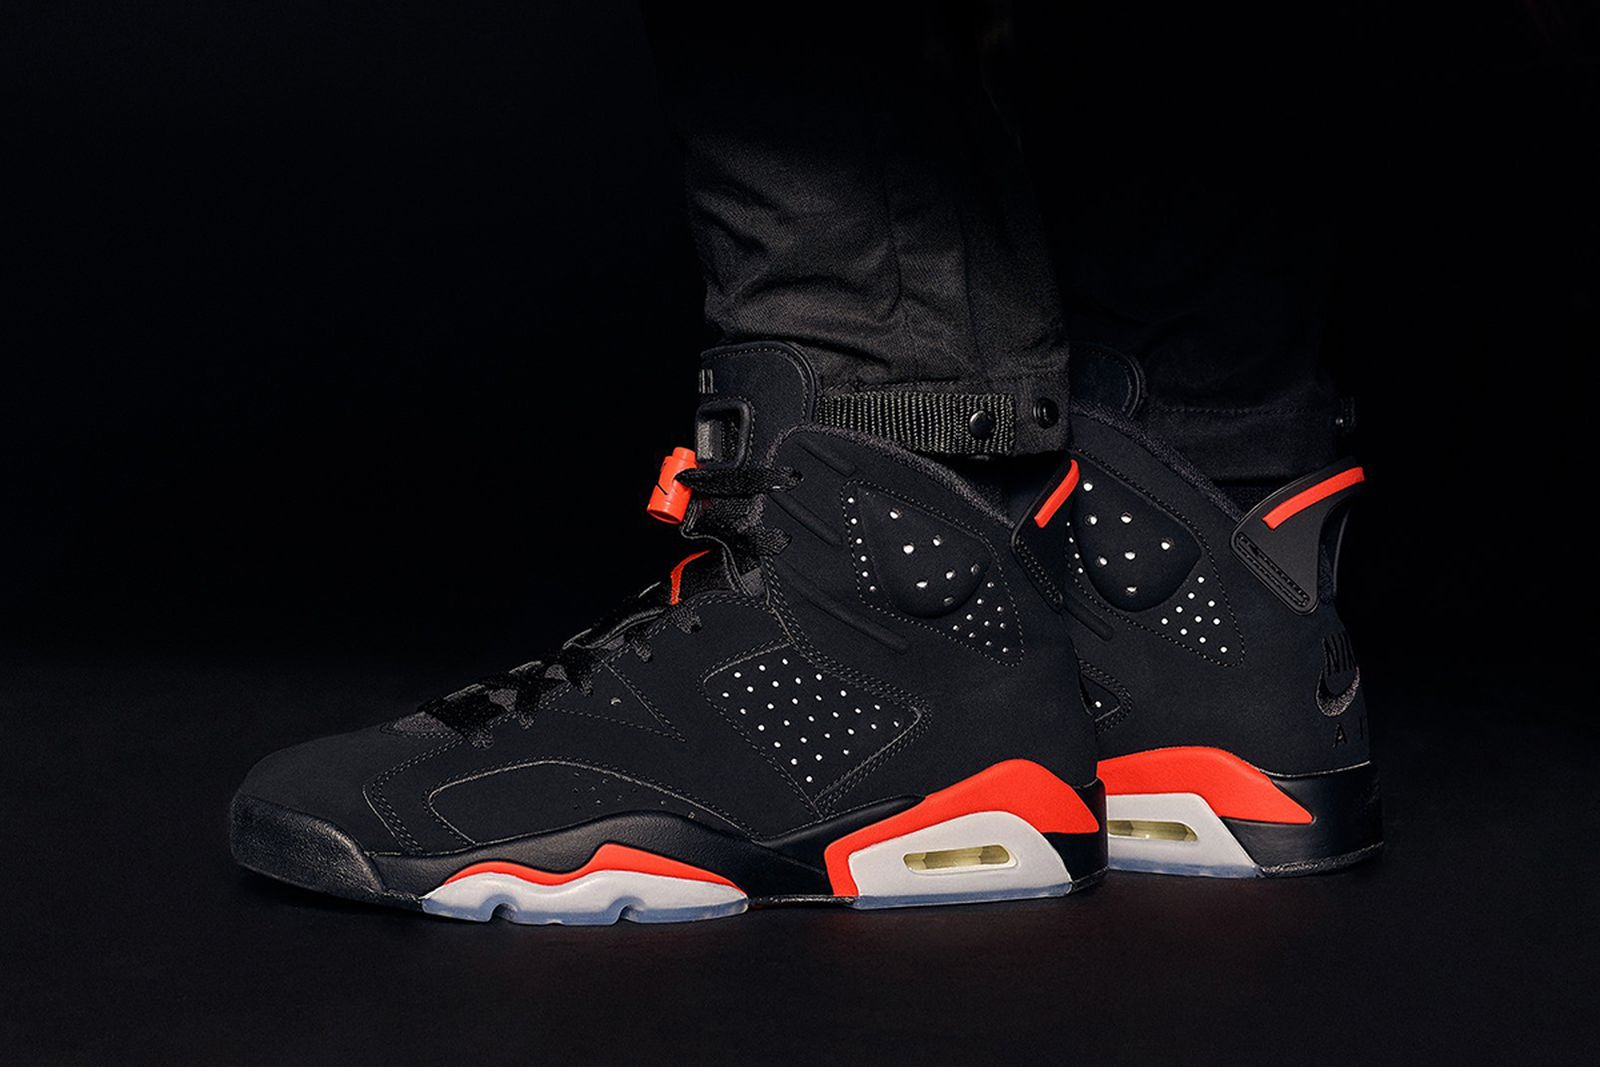 Colapso Insustituible Ejecutable  Here Are the Best Air Jordans of 2019 (So Far)